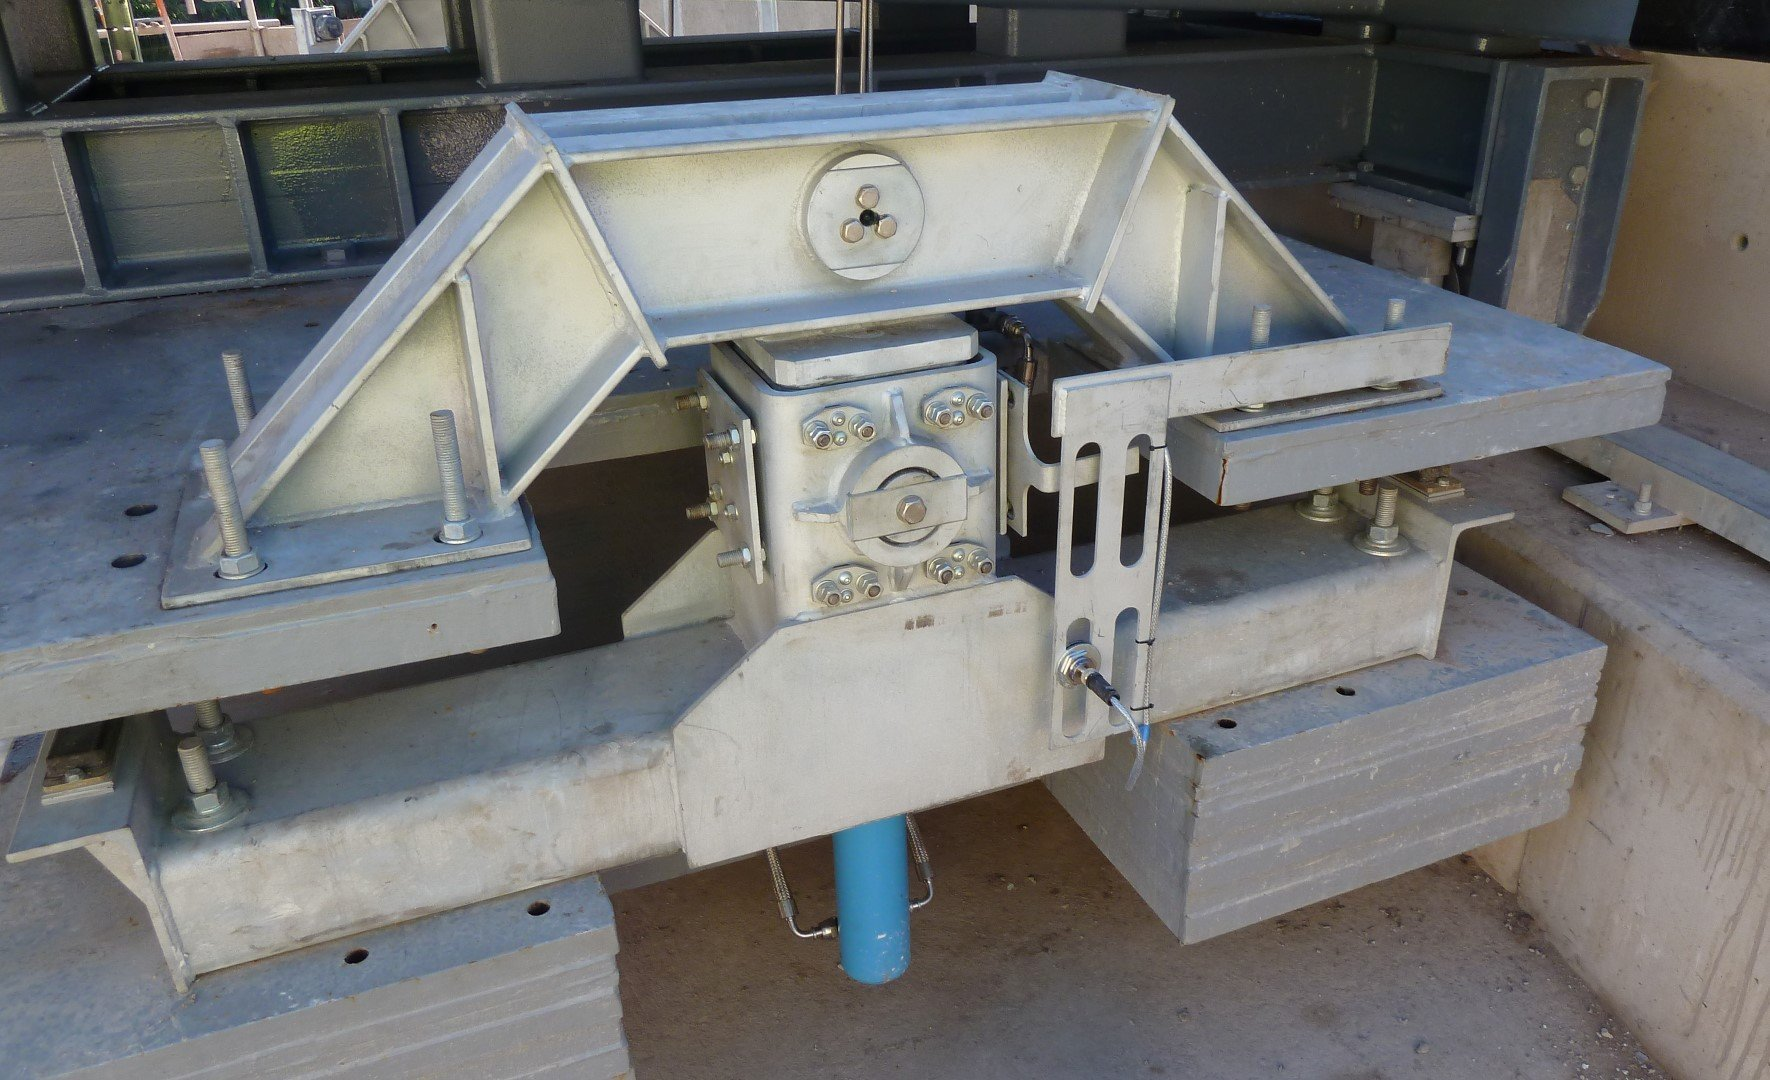 Riversdale Swing bridge counterweight mechanism